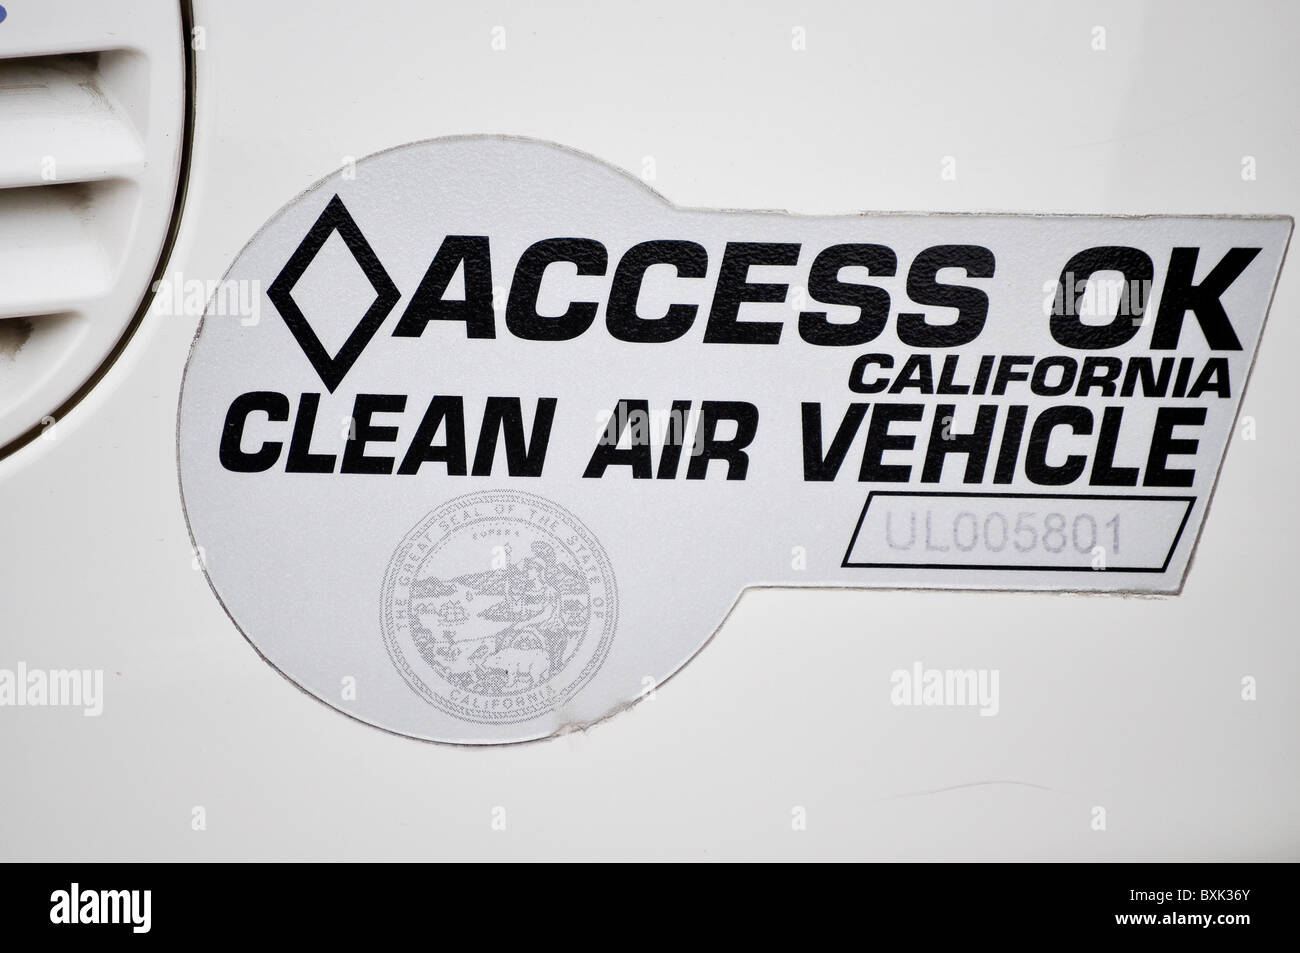 Clean Air Vehicle Natural Gas - Stock Image